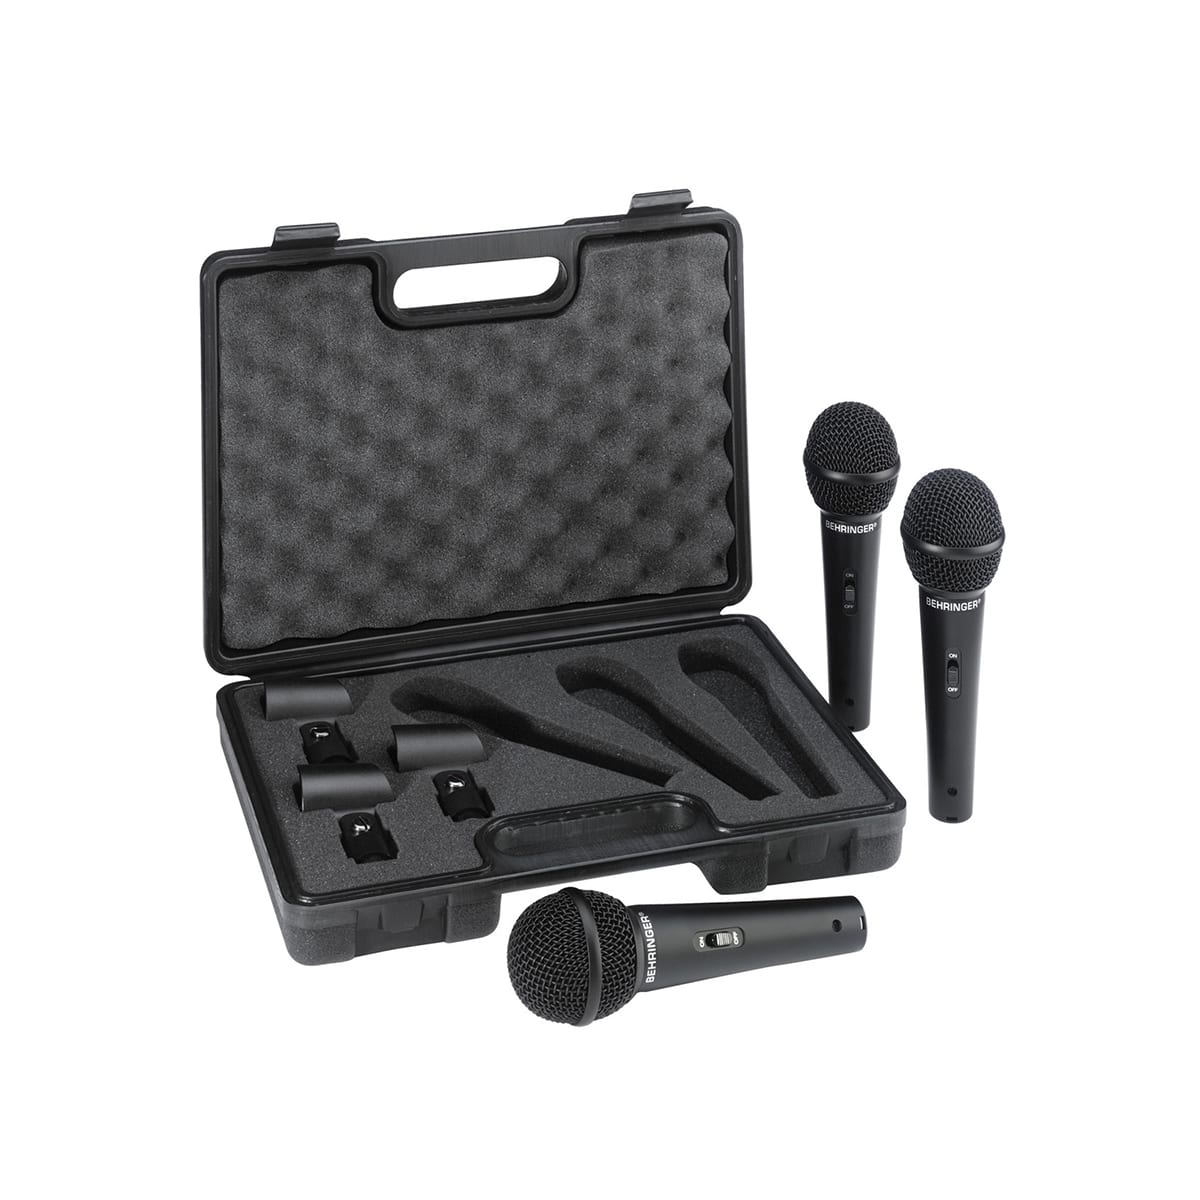 Behringer XM1800 3 Pack Microphone Kit 1